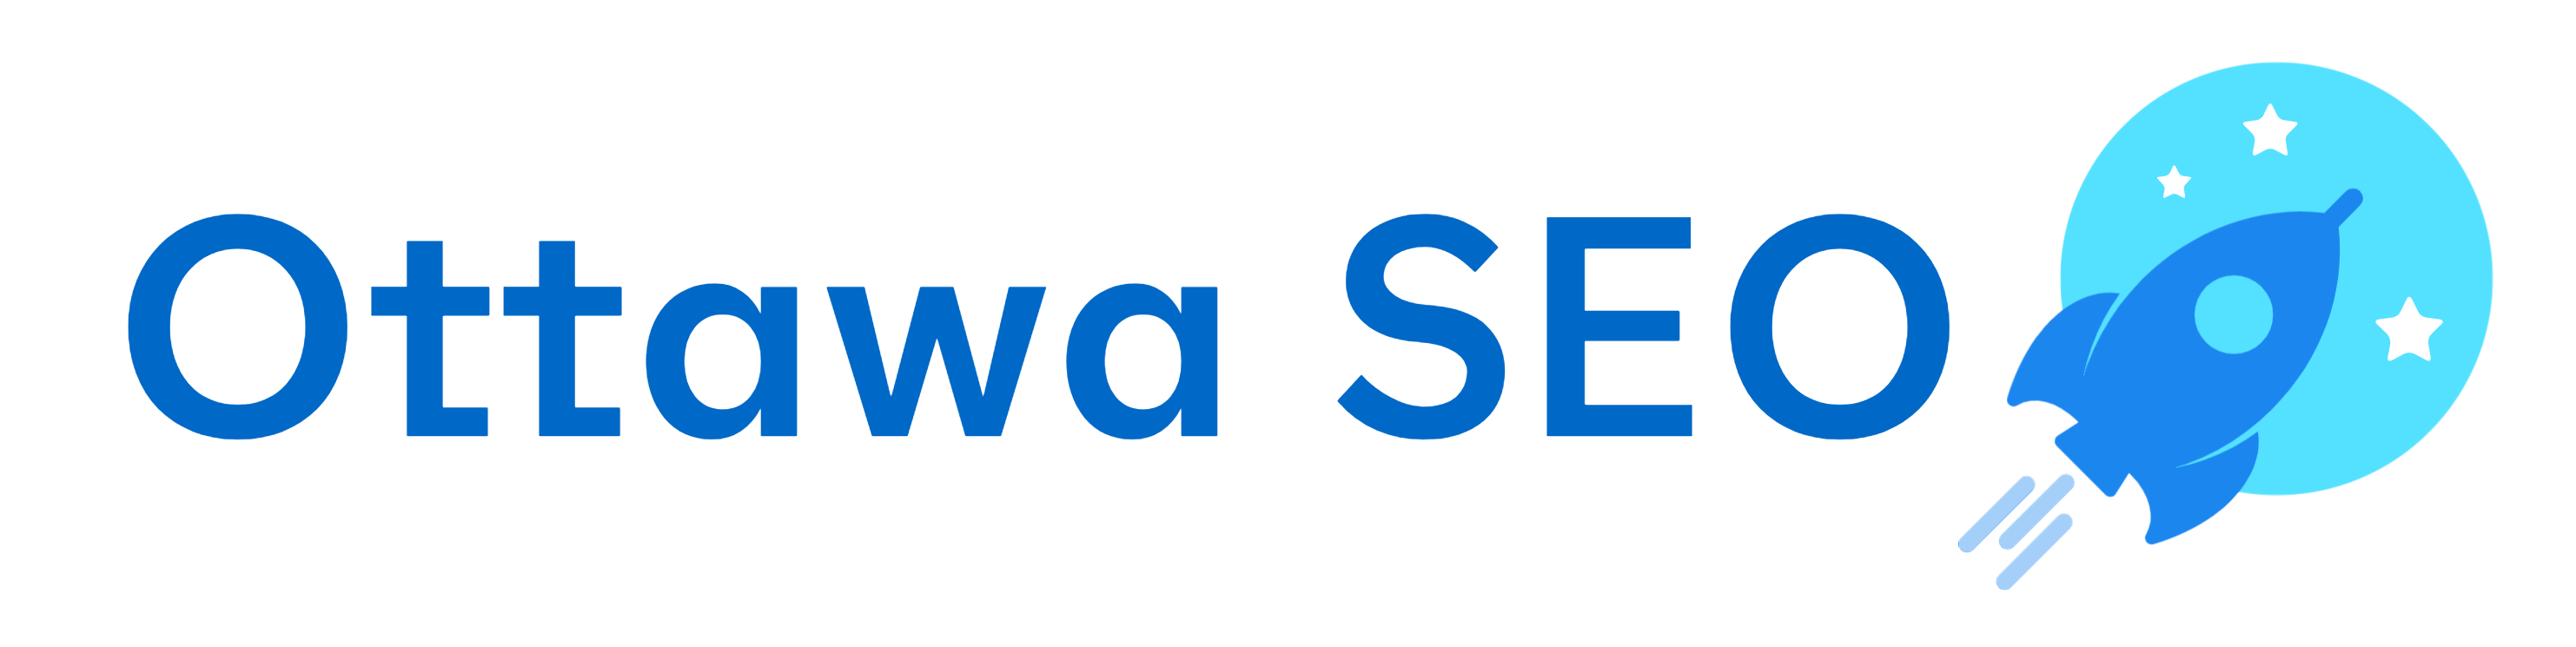 Ottawa SEO Services | Rank Your Website 1st Page On Google